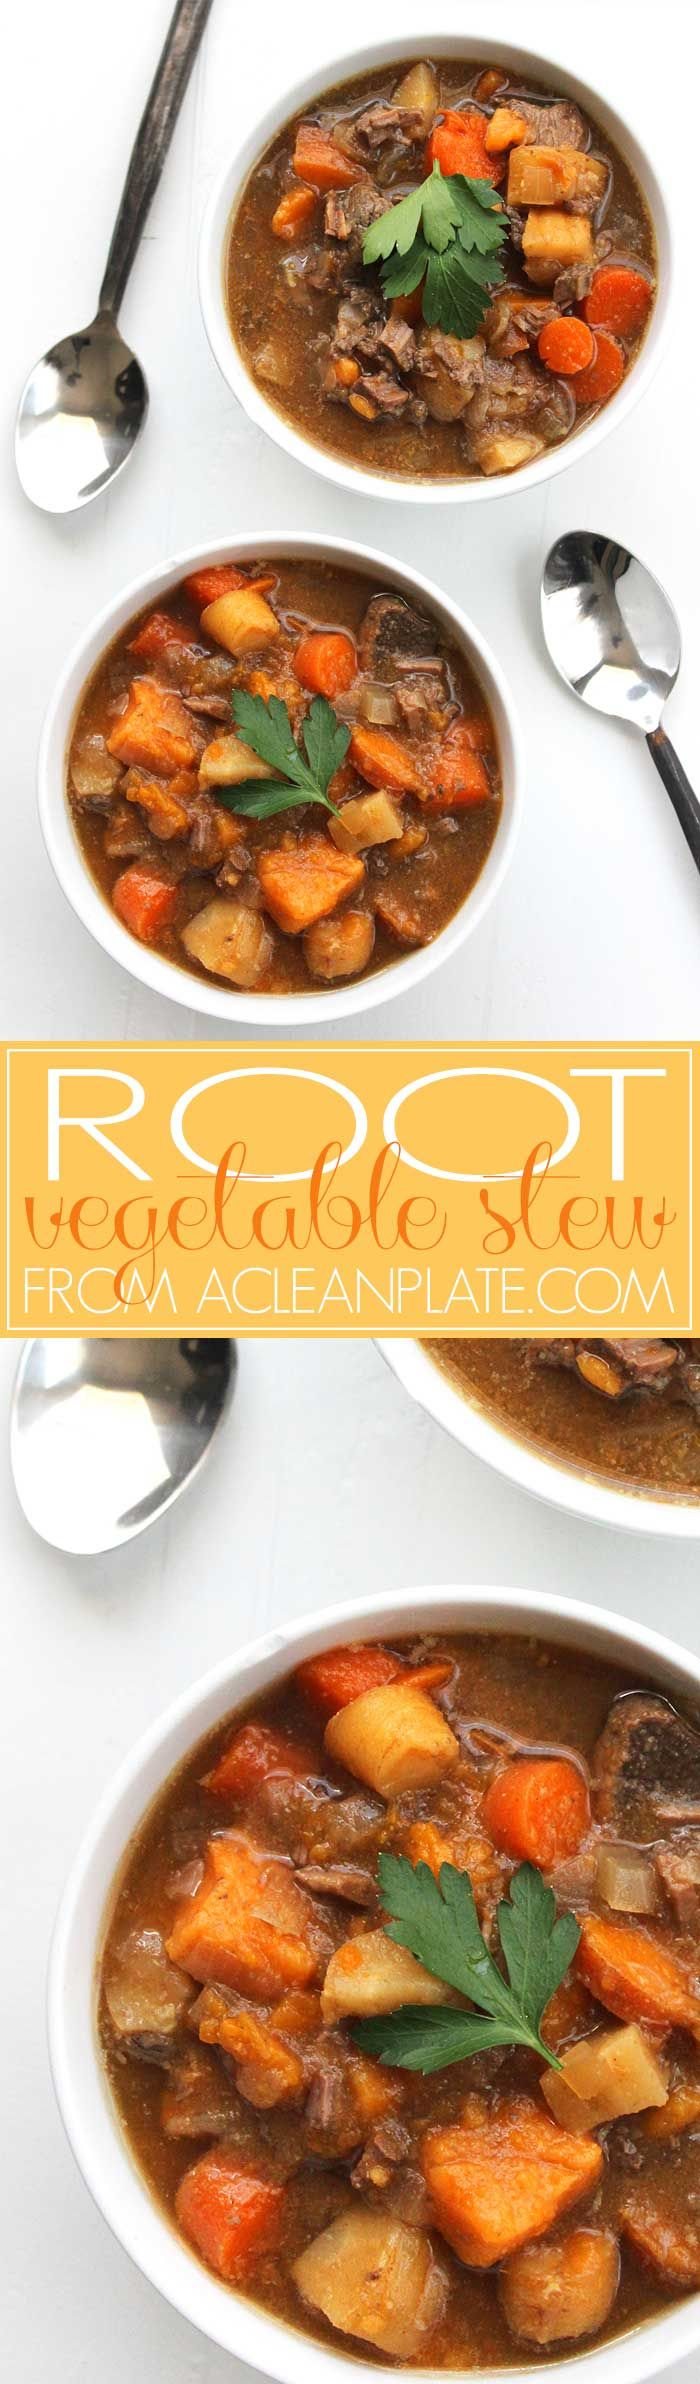 Beef stew, made in slow cooker, try adding carrot and parsnip a few hours before serving instead all day